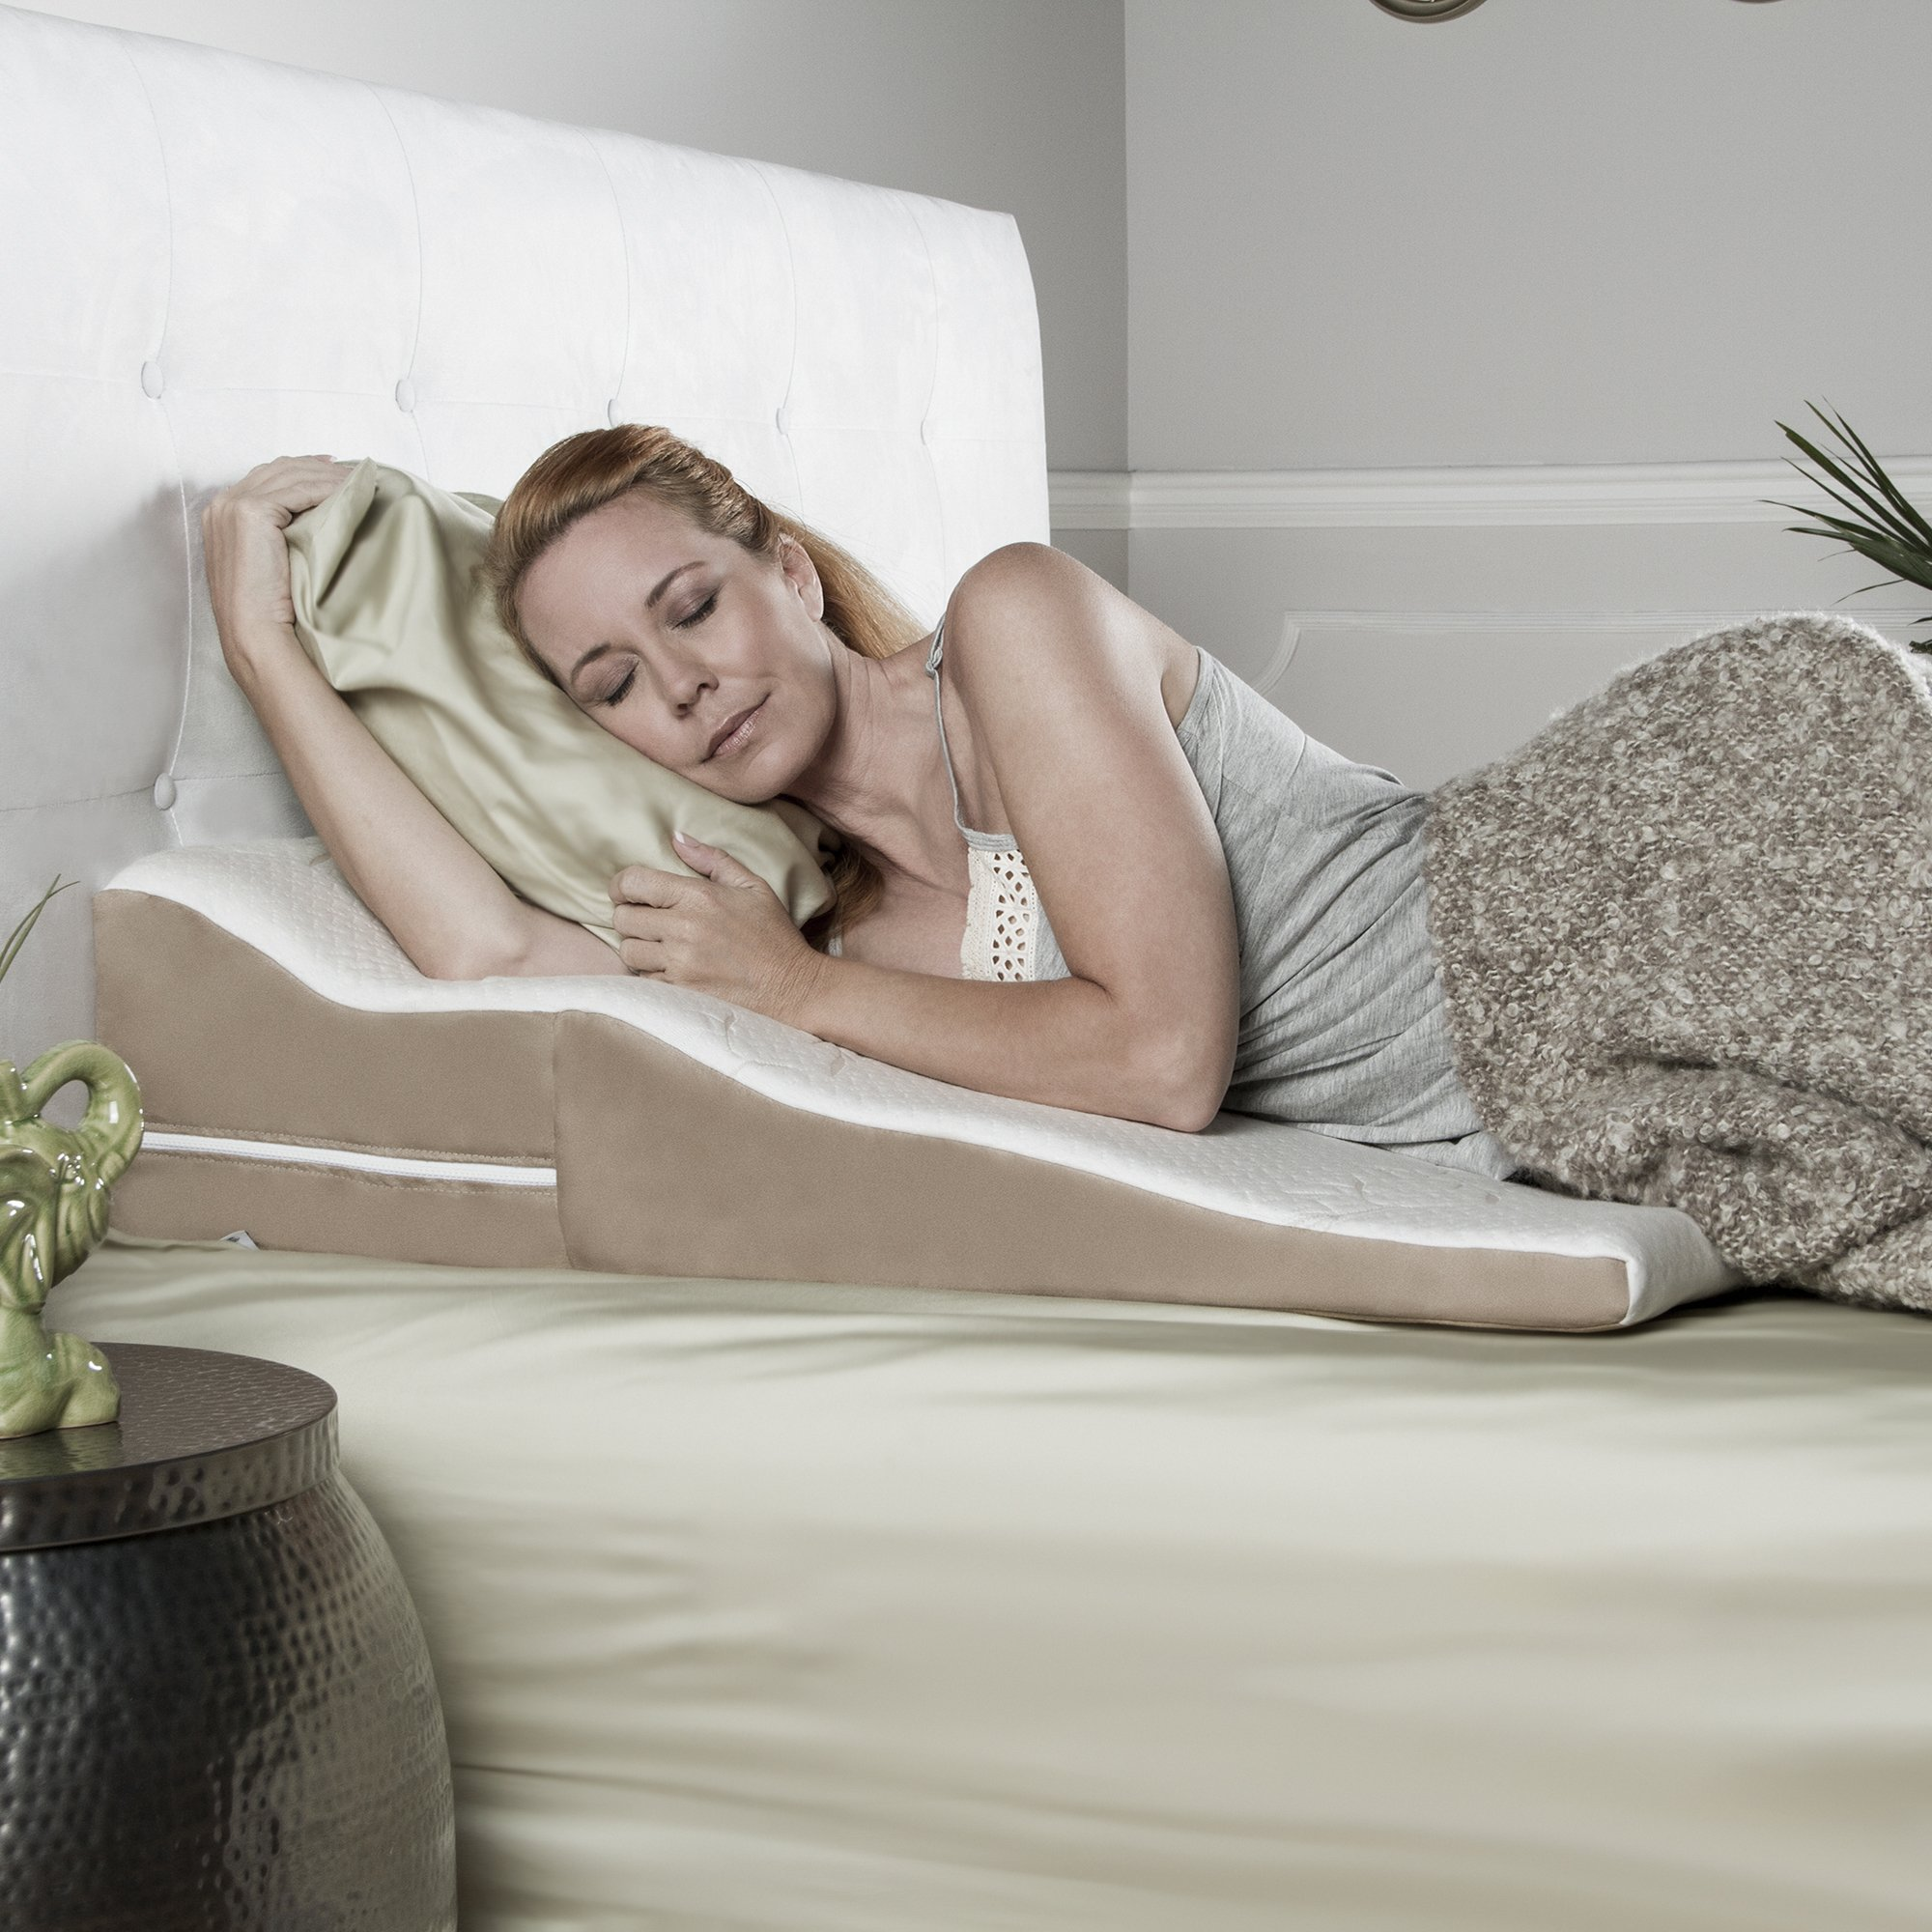 Avana Contoured Bed Wedge Support Pillow for Side Sleepers with Cool Gel Memory Foam